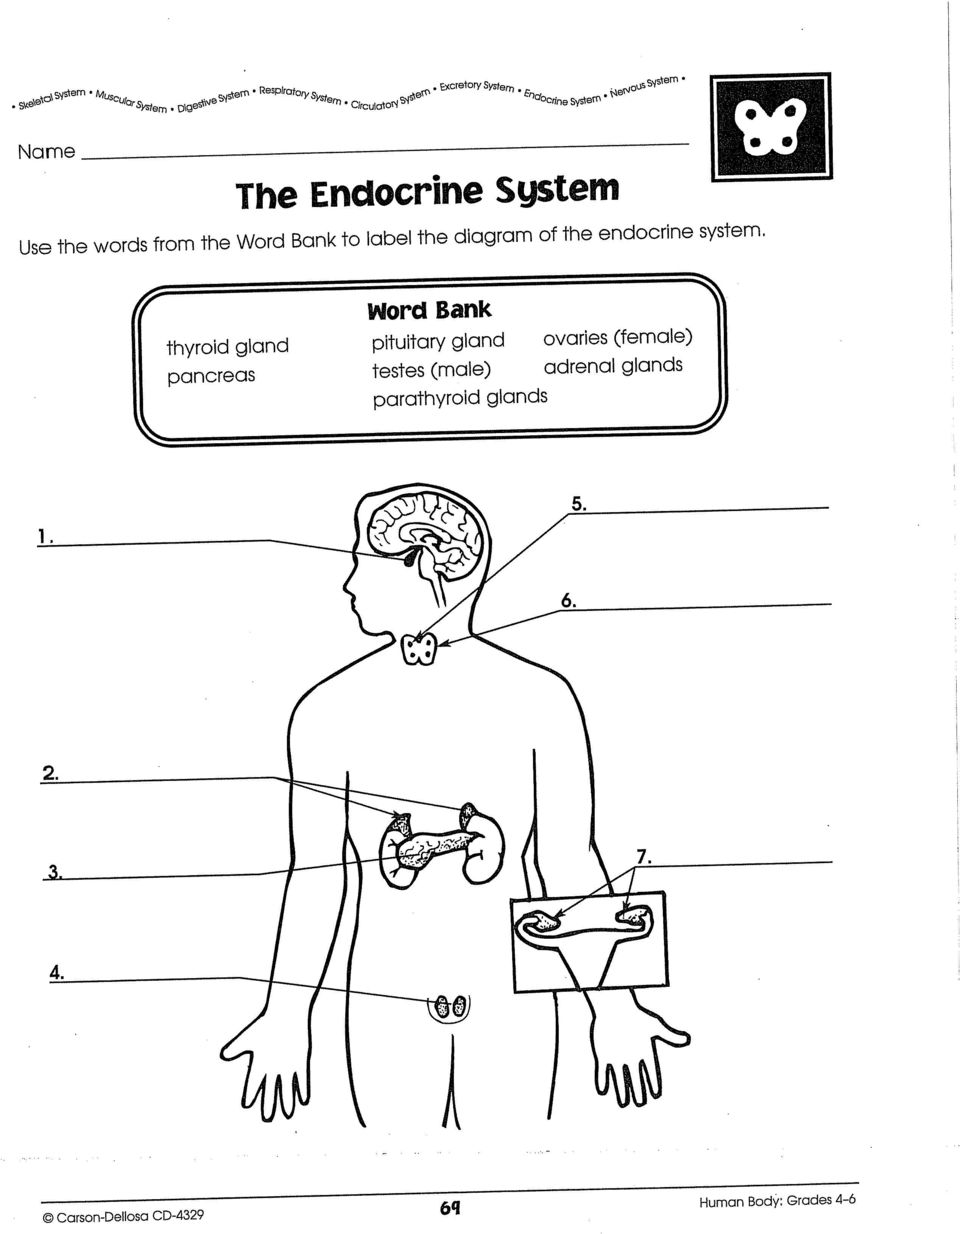 Fantastisch Anatomy And Physiology Coloring Workbook Endocrine ...